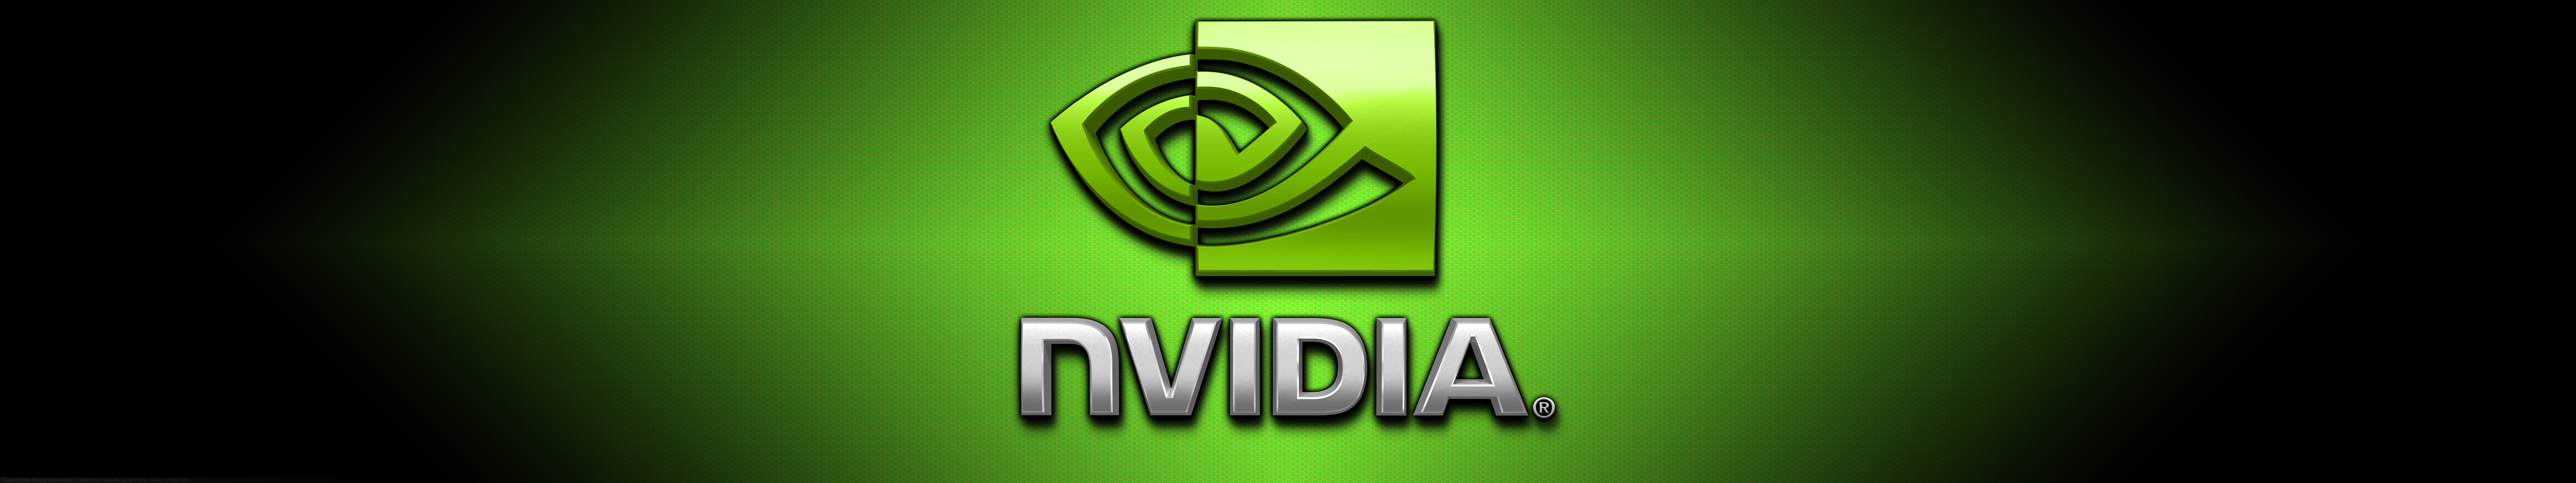 logos brands Green nvidia HD Wallpaper